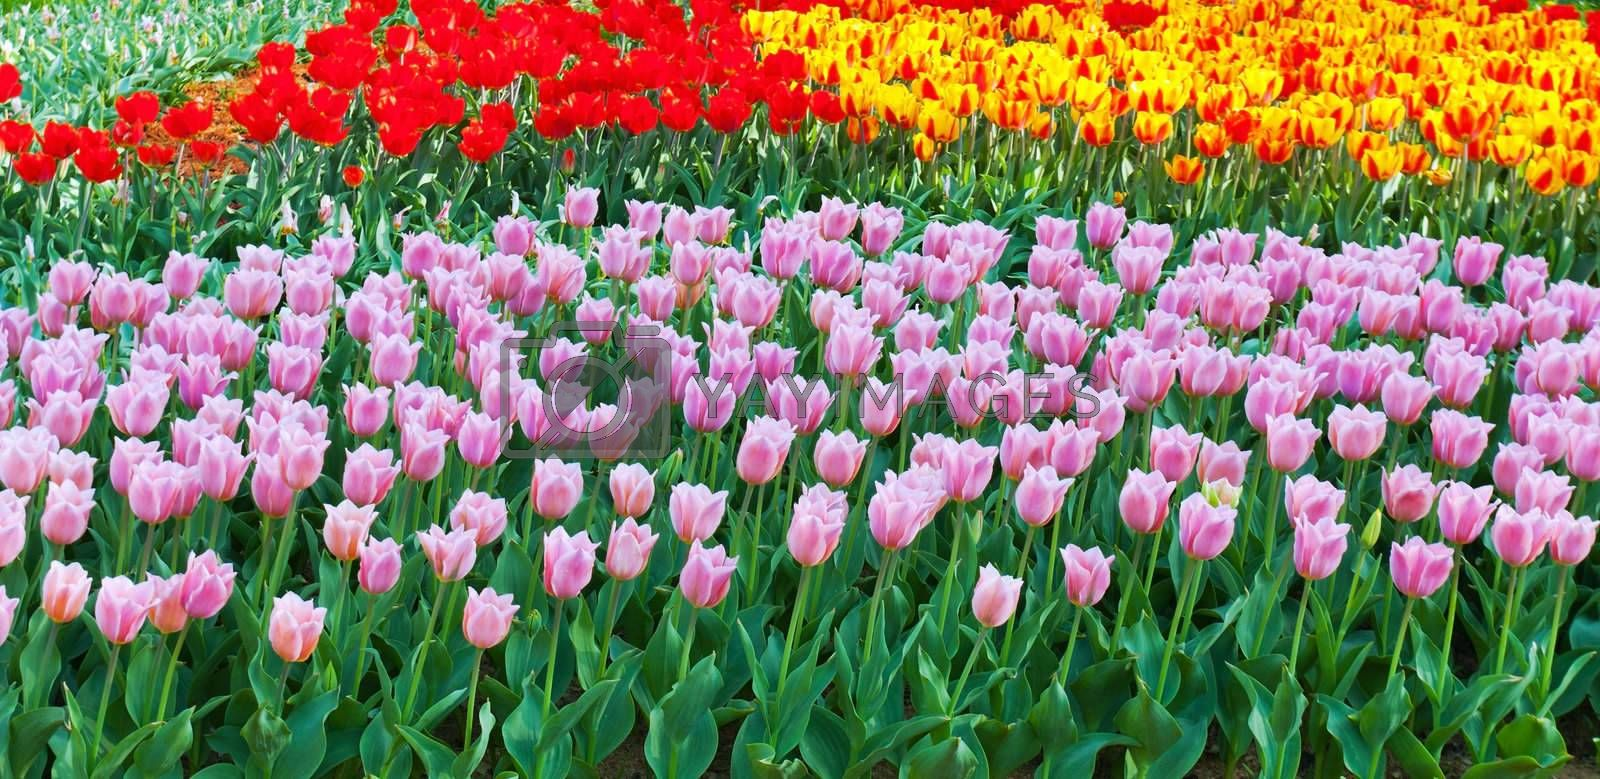 tulips purple, yellow and red spring bed